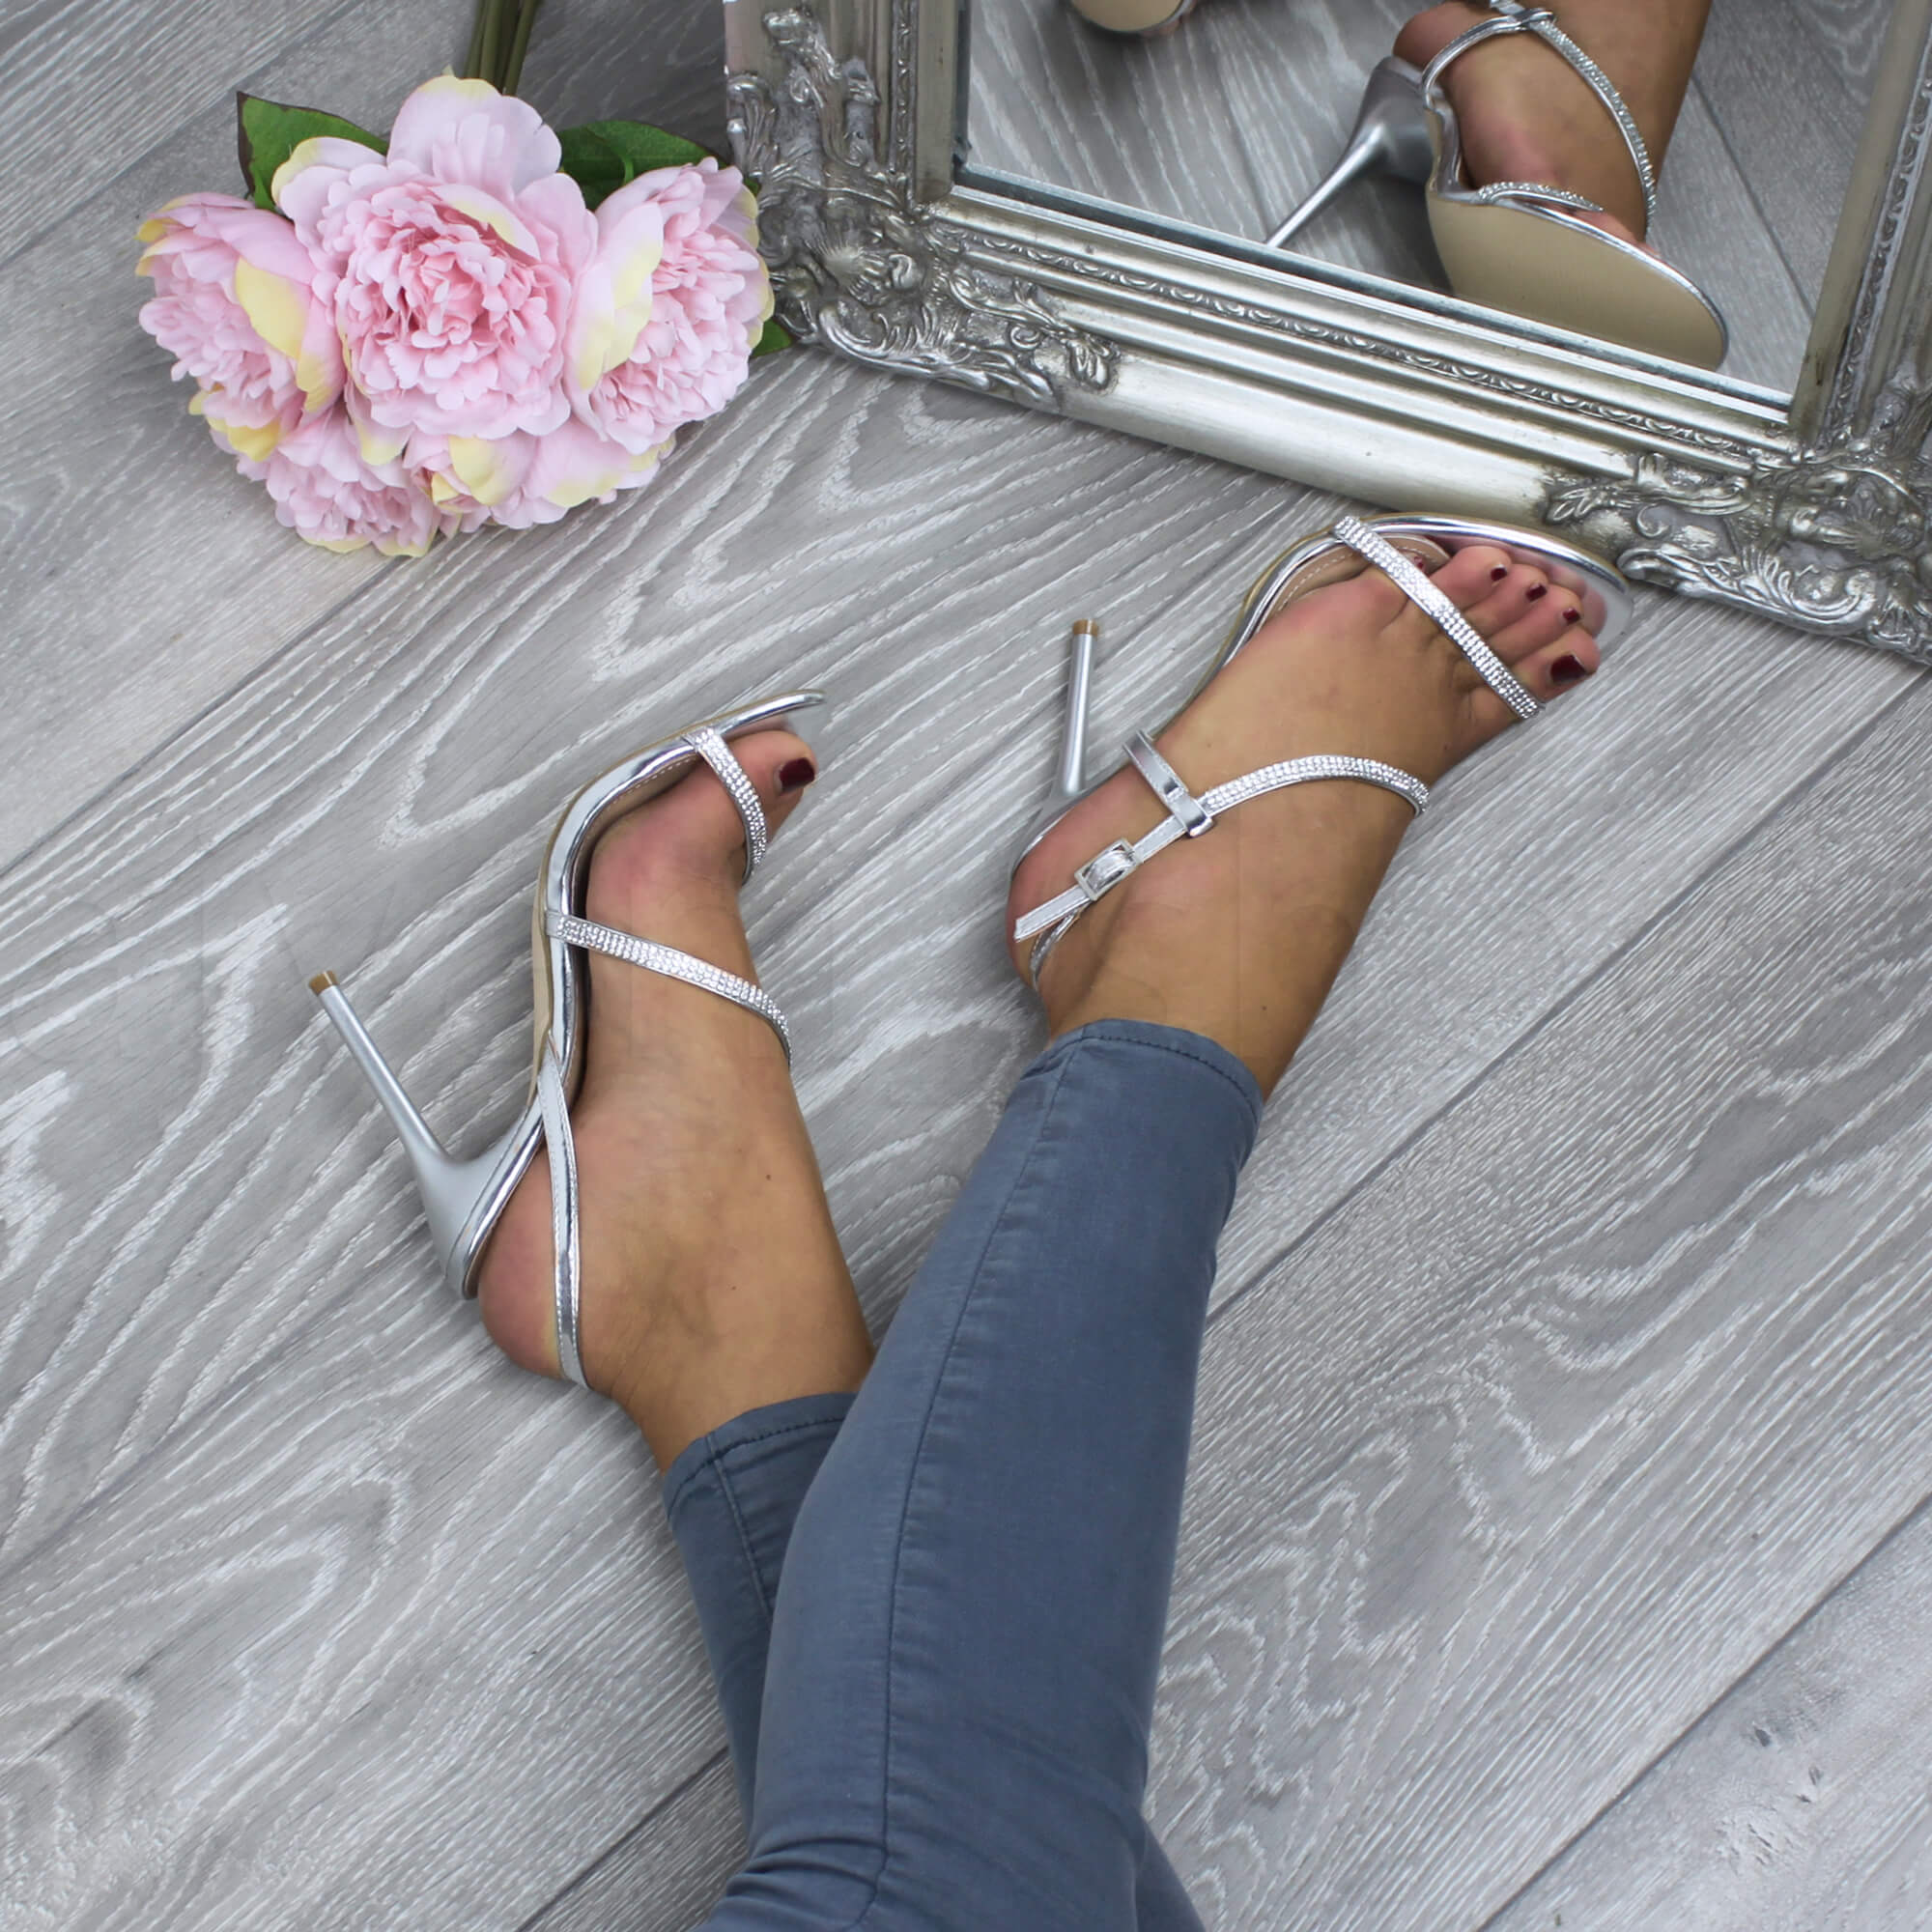 WOMENS-LADIES-HIGH-HEEL-DIAMANTE-BARELY-THERE-STRAPPY-EVENING-SANDALS-SIZE thumbnail 22